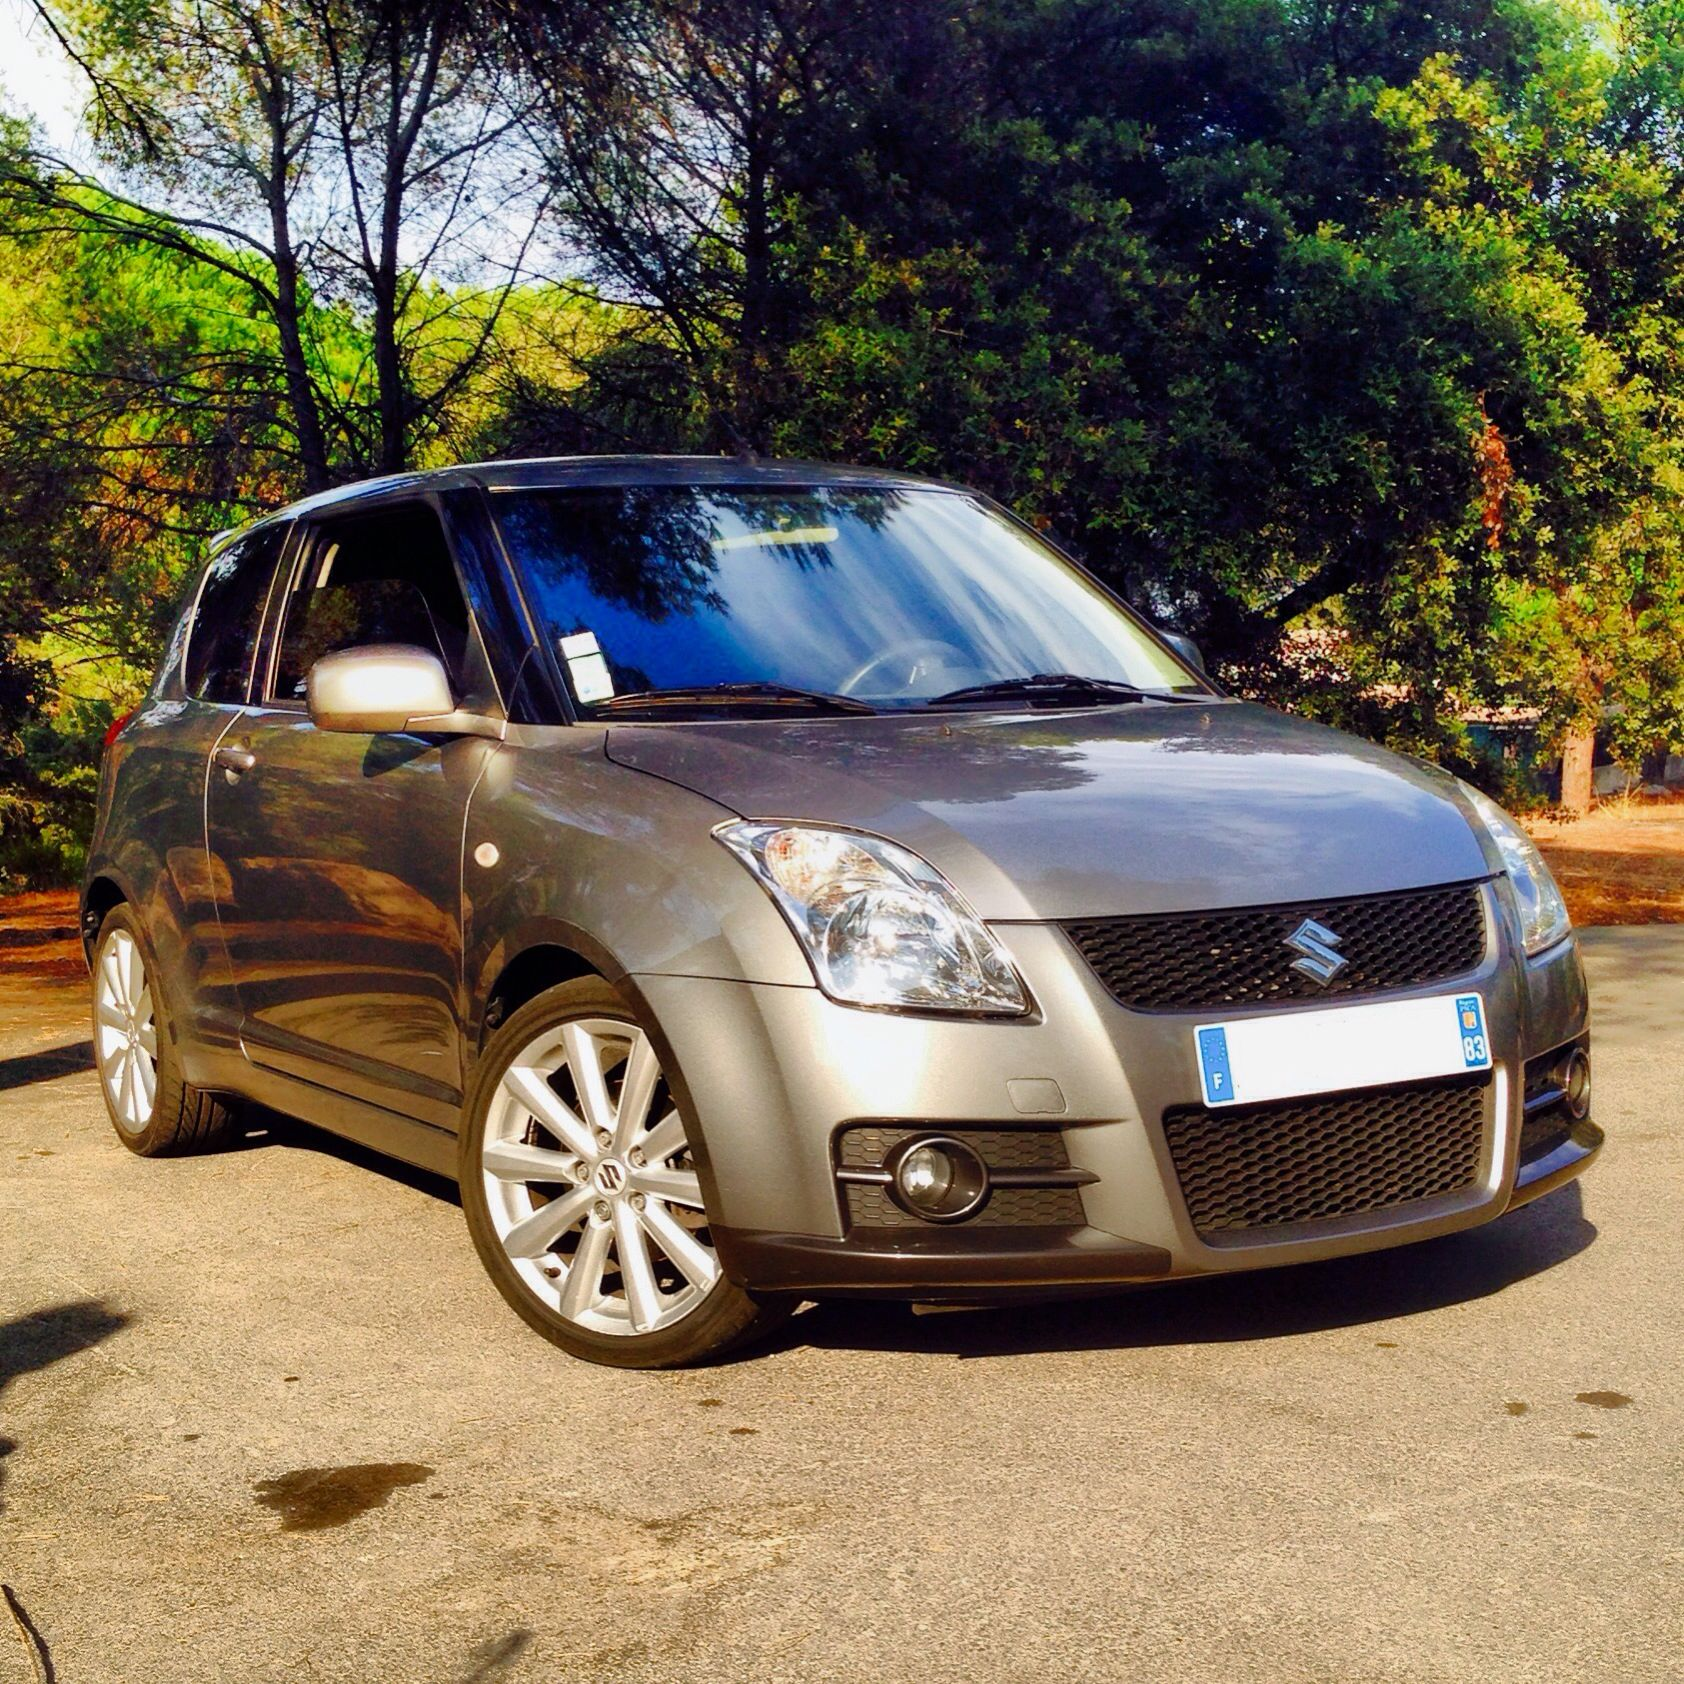 Suzuki swift sport 2013 pictures to pin on pinterest - My Suzuki Swift Sport Galactic Grey